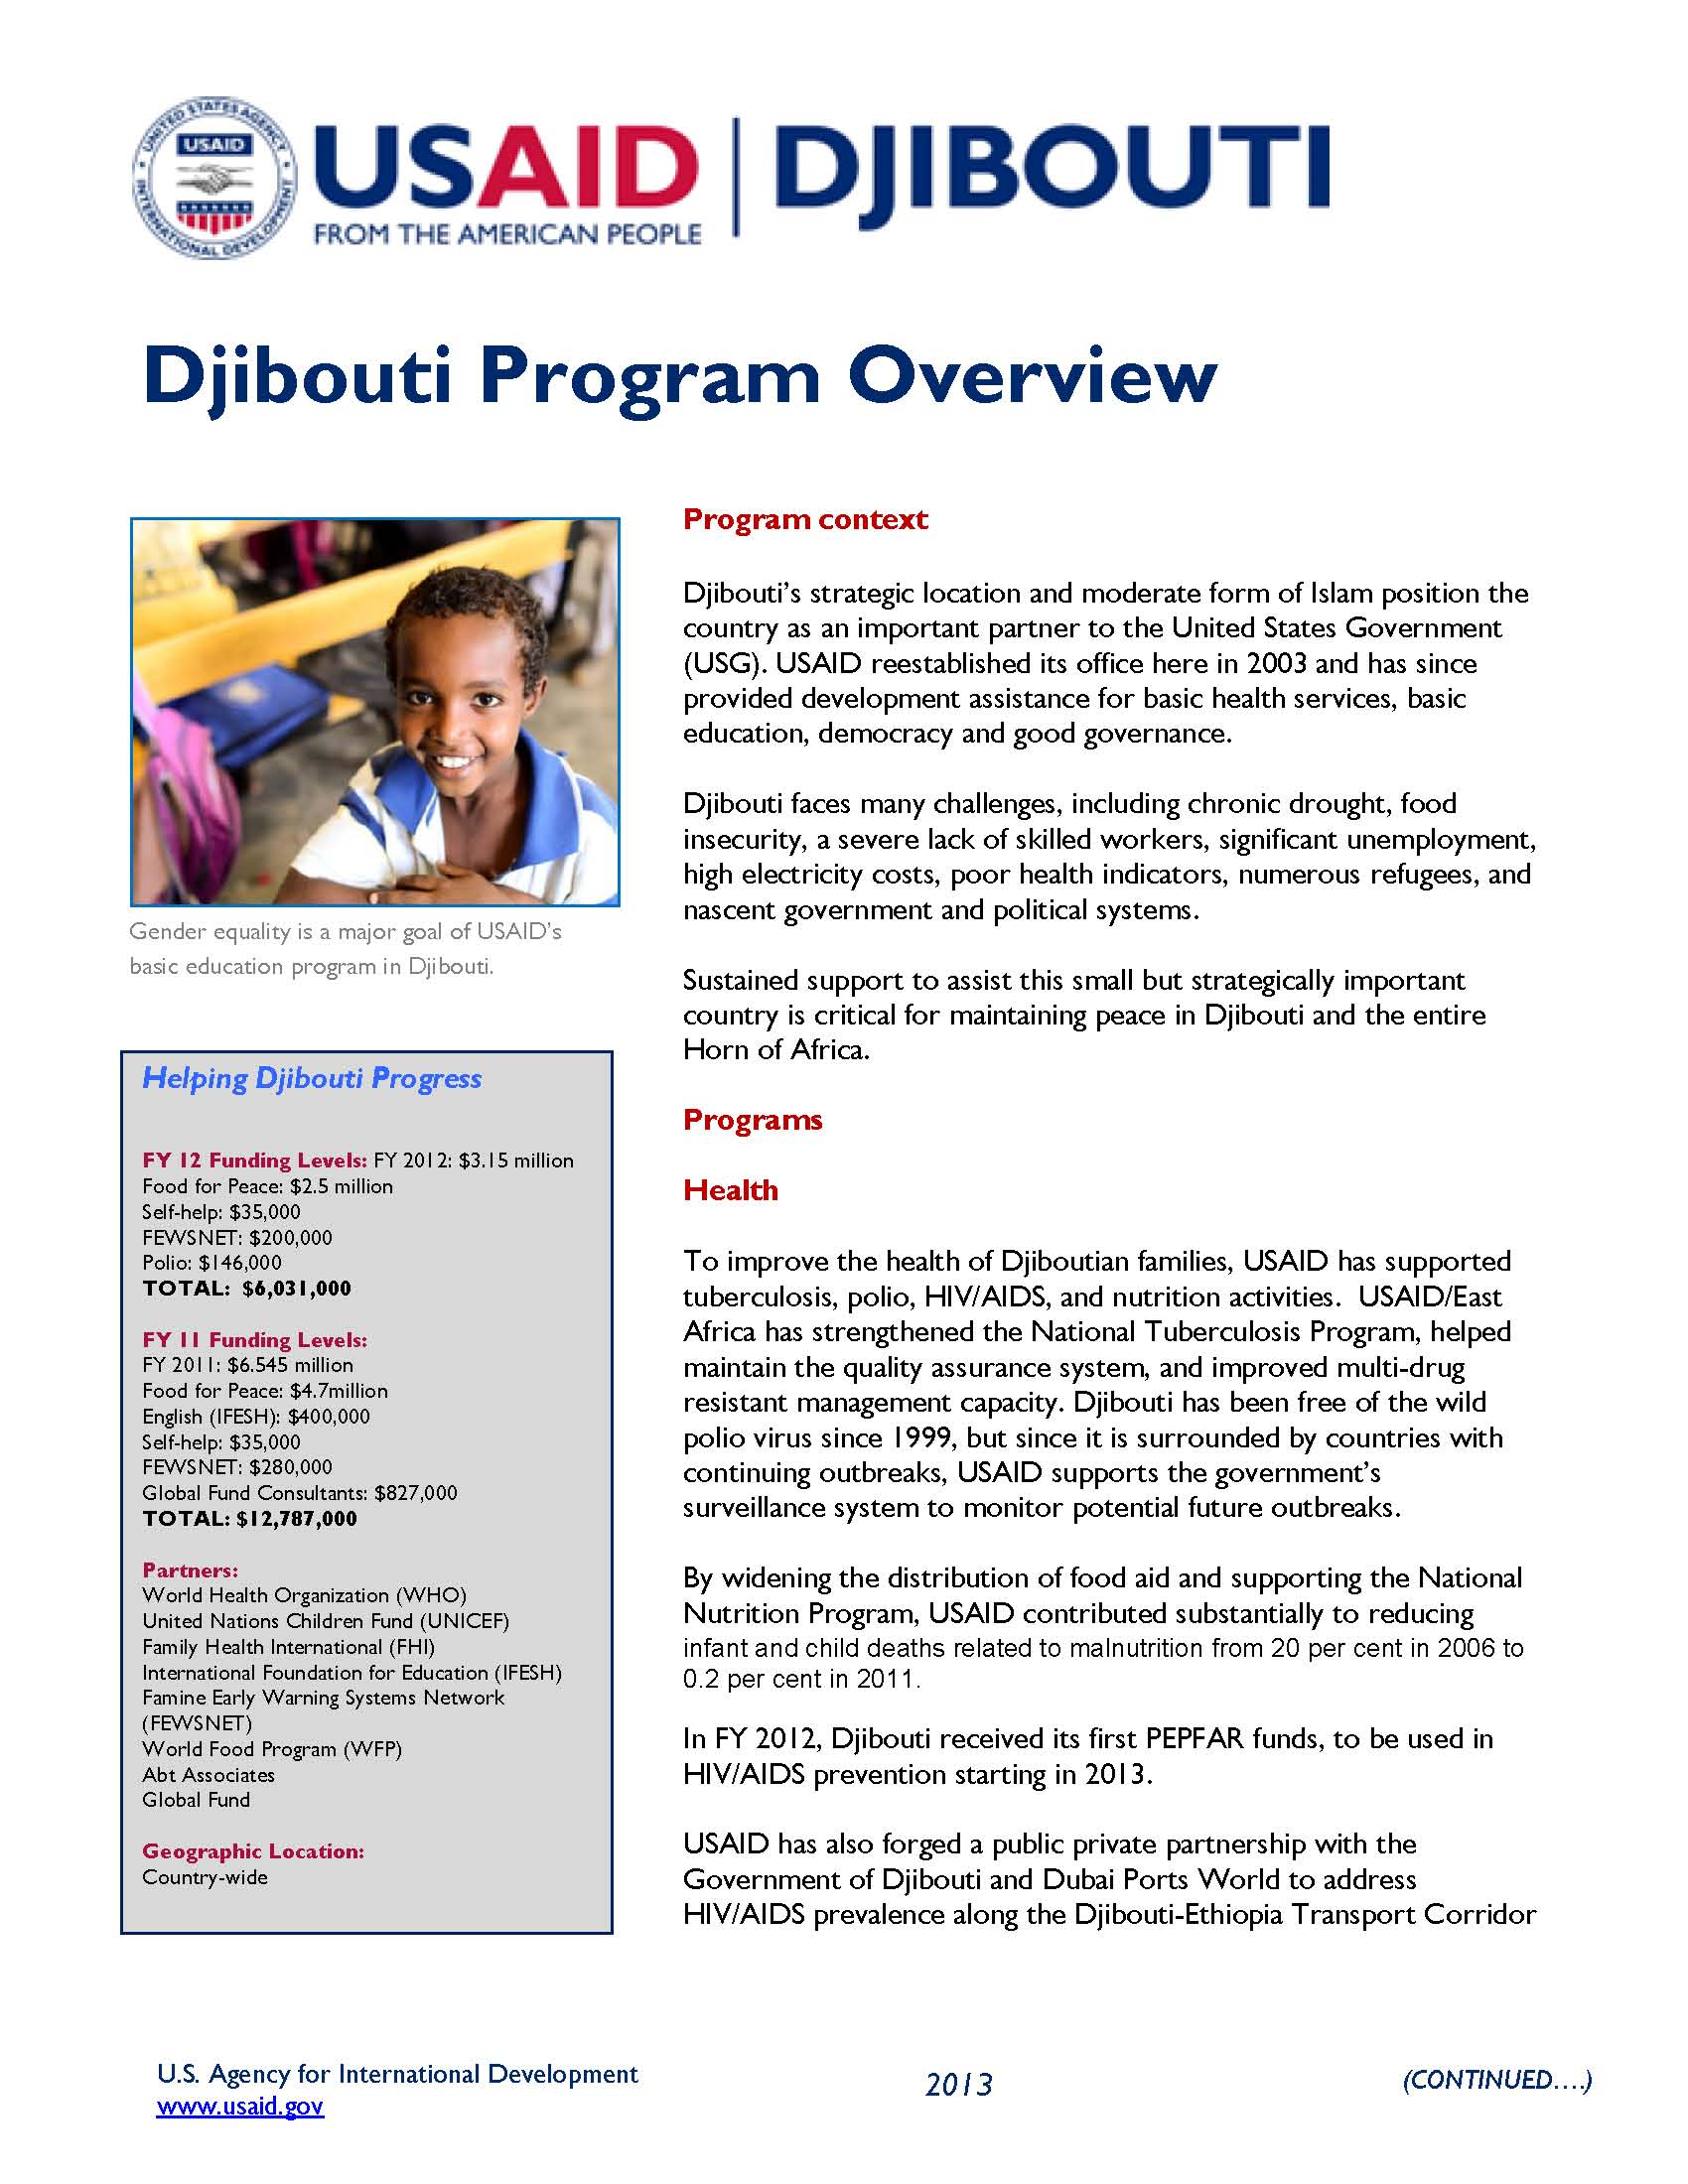 Djibouti Program Fact Sheet